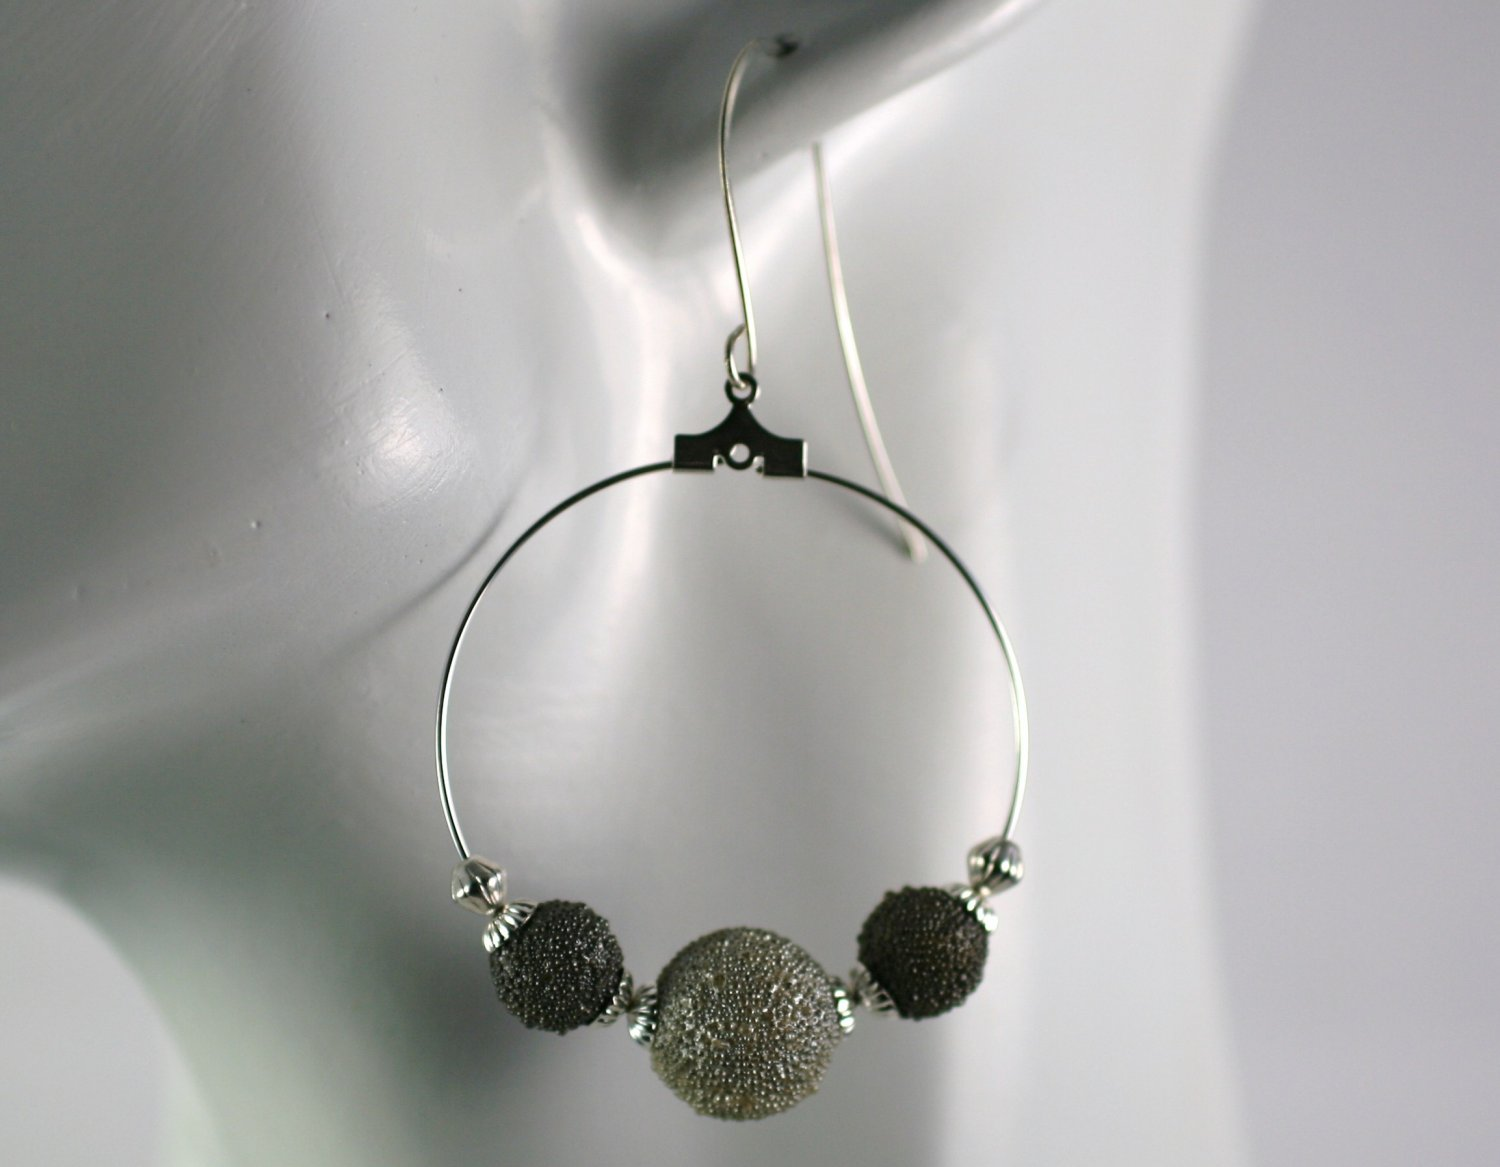 Silver Hoop Earrings with Gray Bumpy Beads 1.5 in.  Handcrafted Jewelry